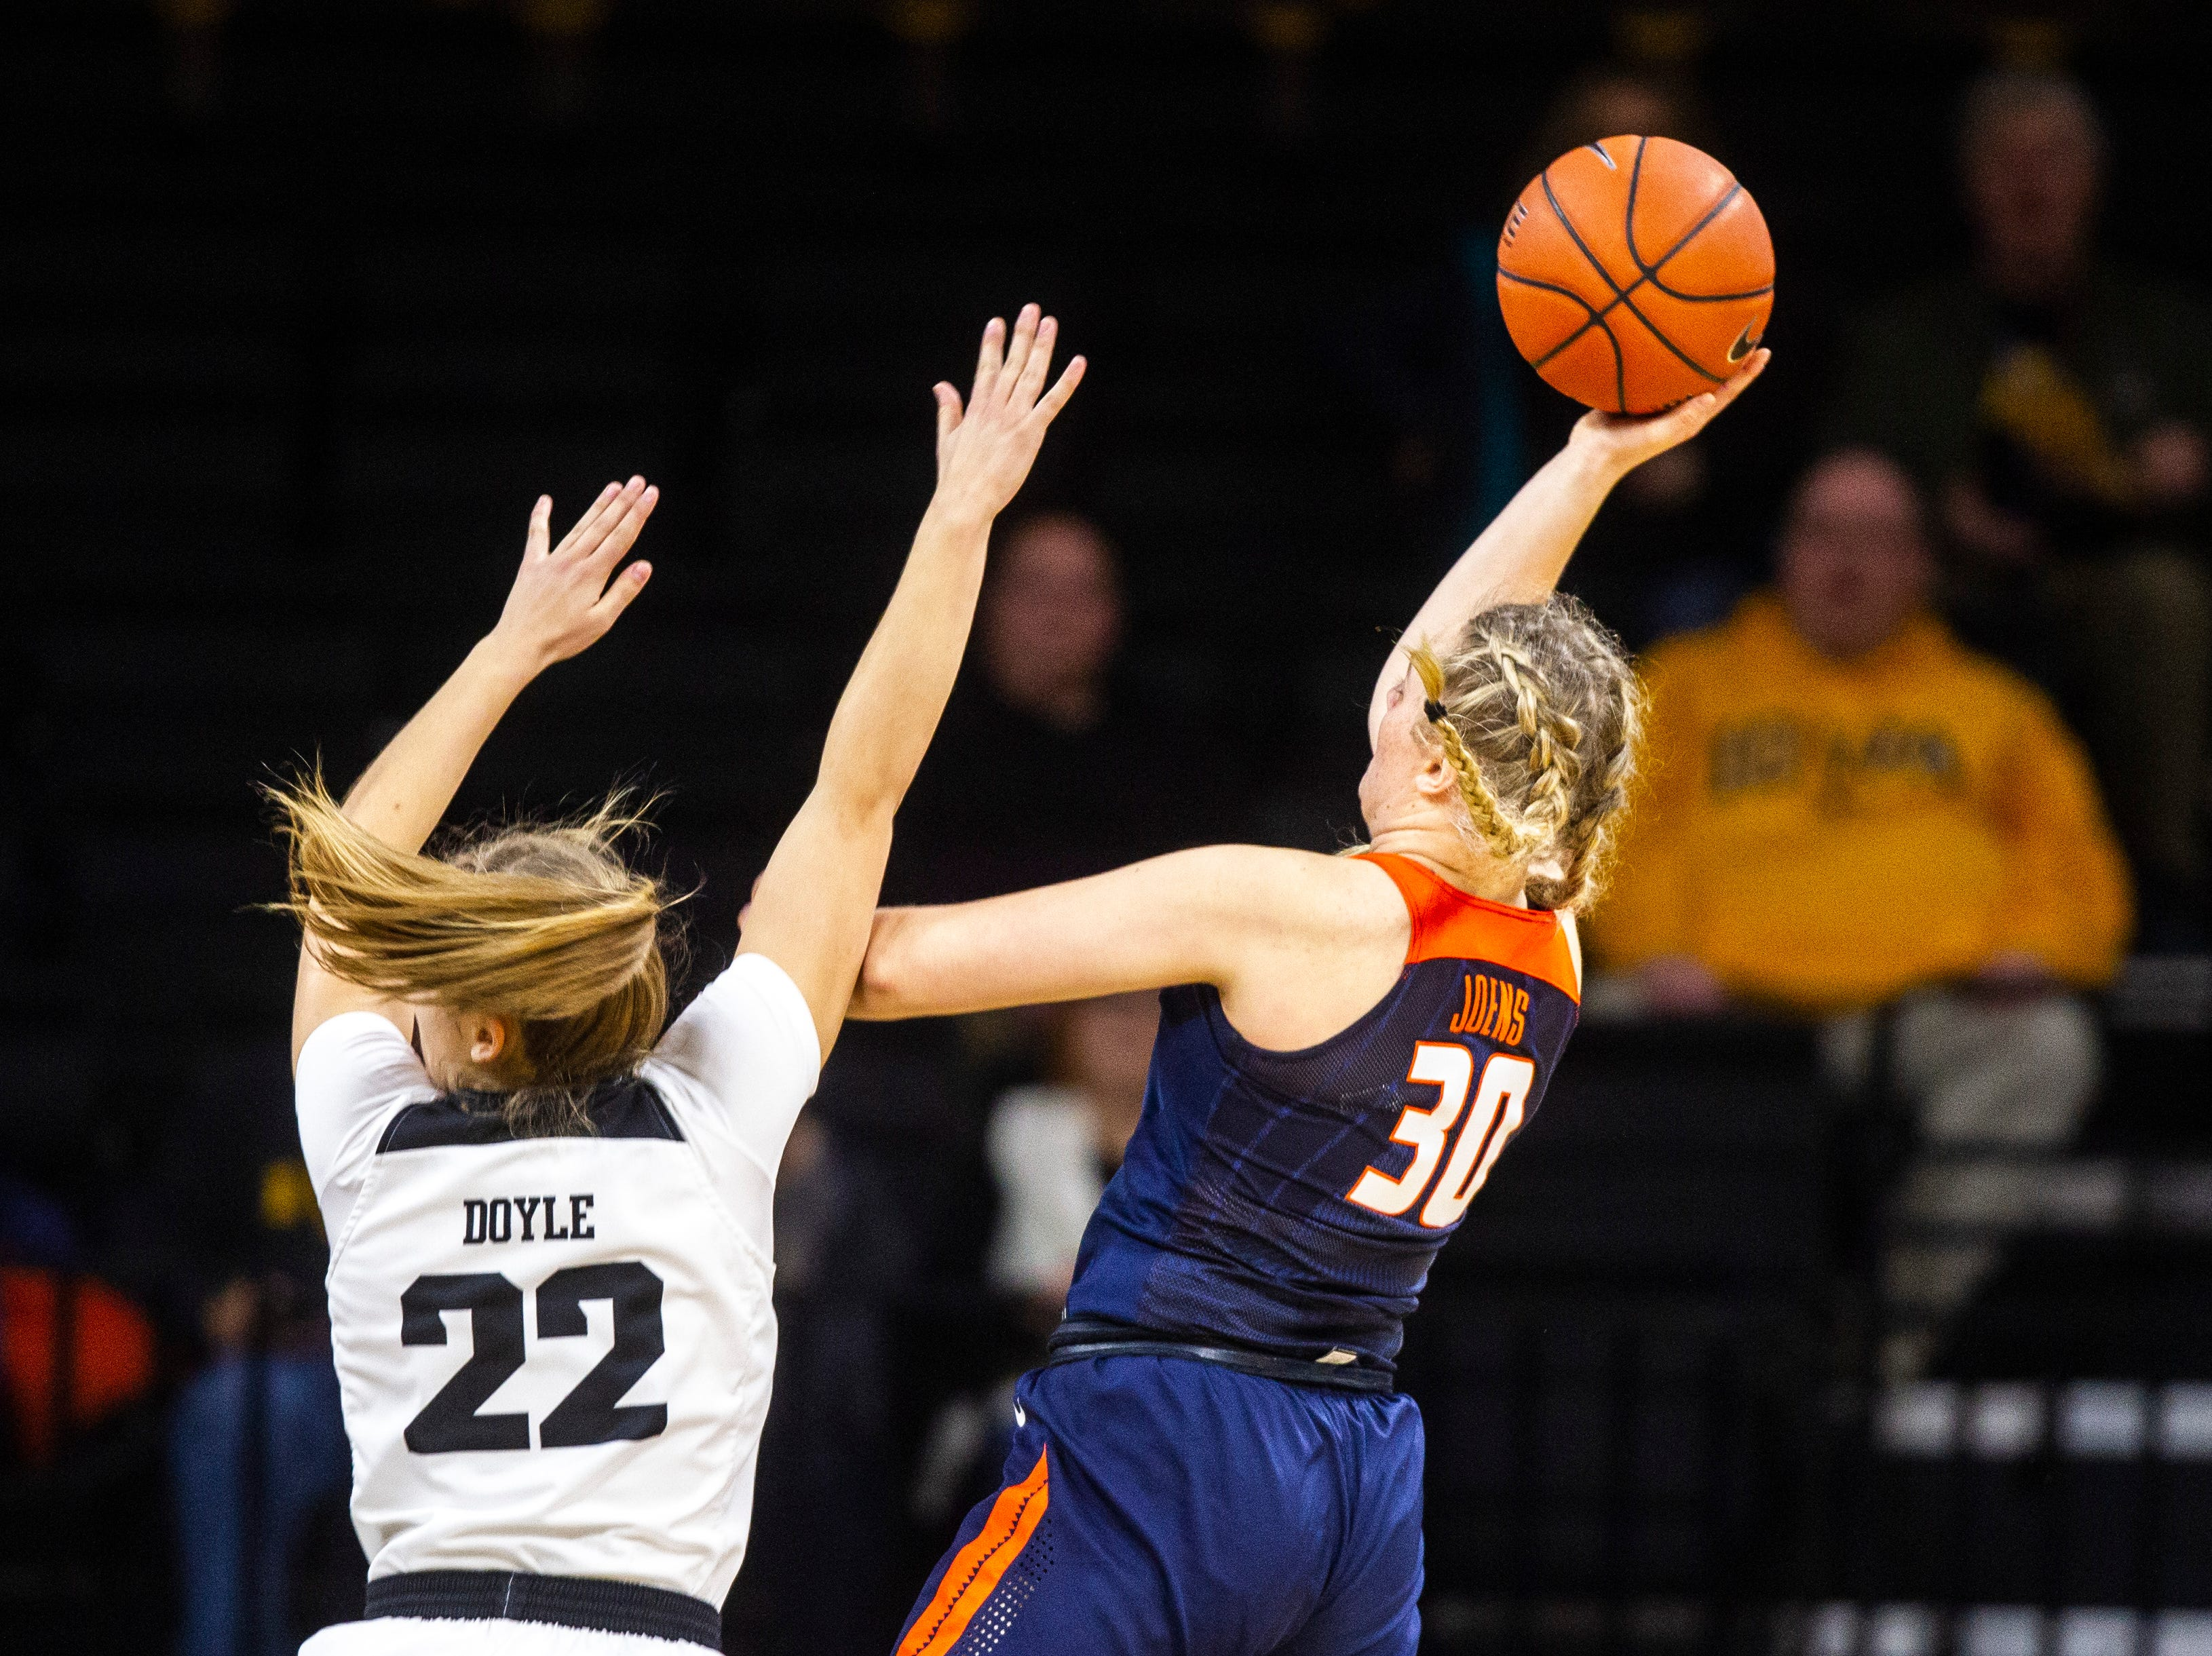 Illinois guard Courtney Joens (30) attempts a basket while Iowa guard Kathleen Doyle (22) defends during a NCAA Big Ten Conference women's basketball game on Thursday, Feb. 14, 2019 at Carver-Hawkeye Arena in Iowa City, Iowa.